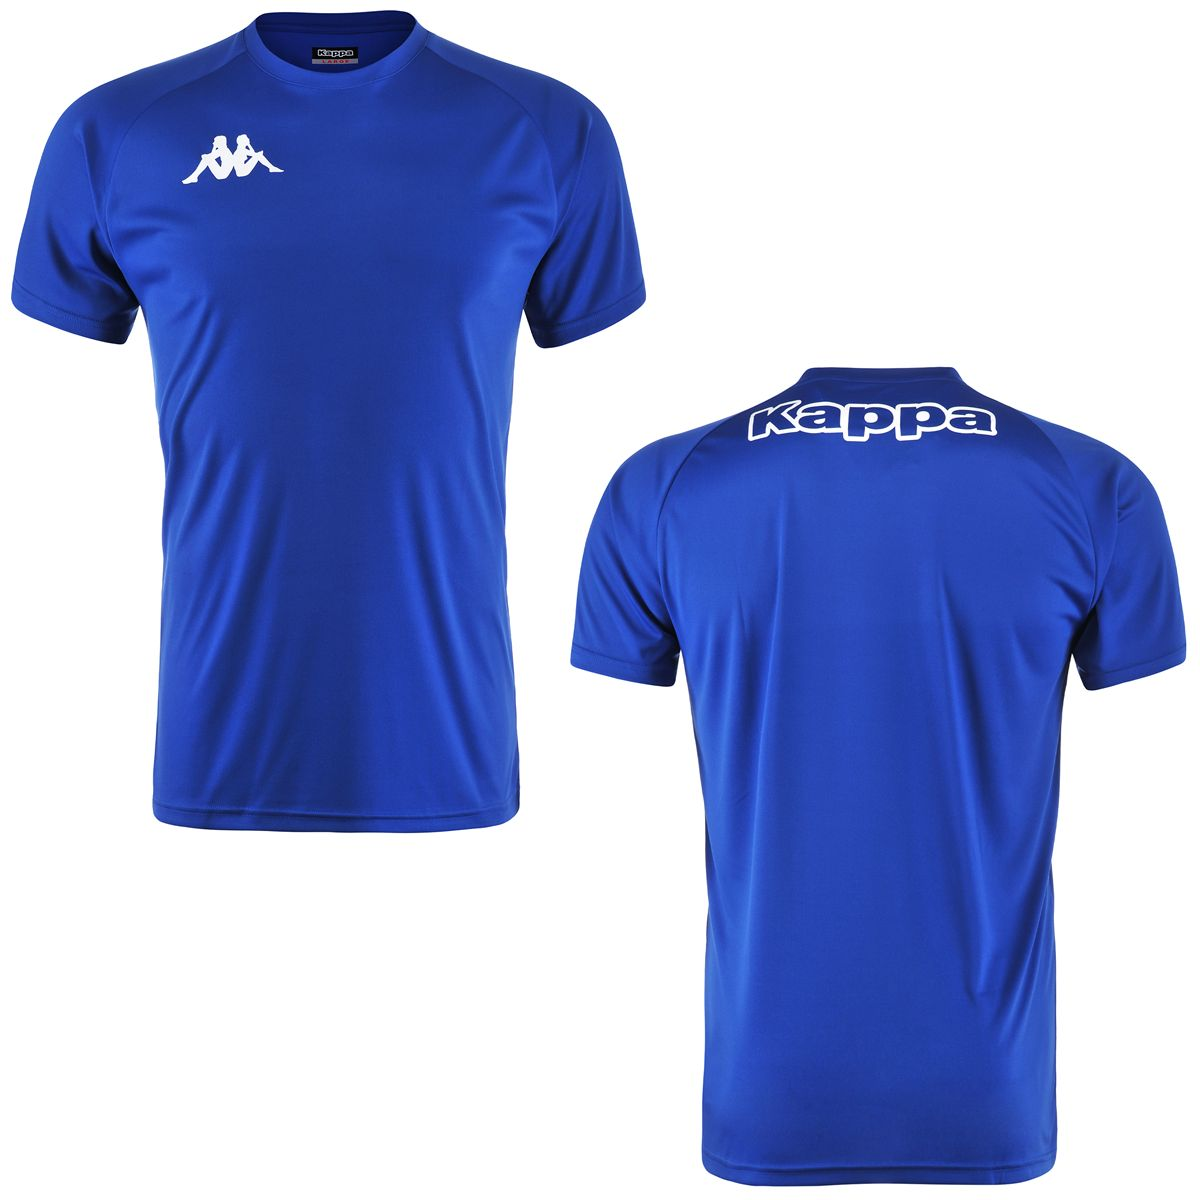 Kappa T-shirt sport Active Jersey KAPPA4BASKET ANTEL Junior Boy Basket sport